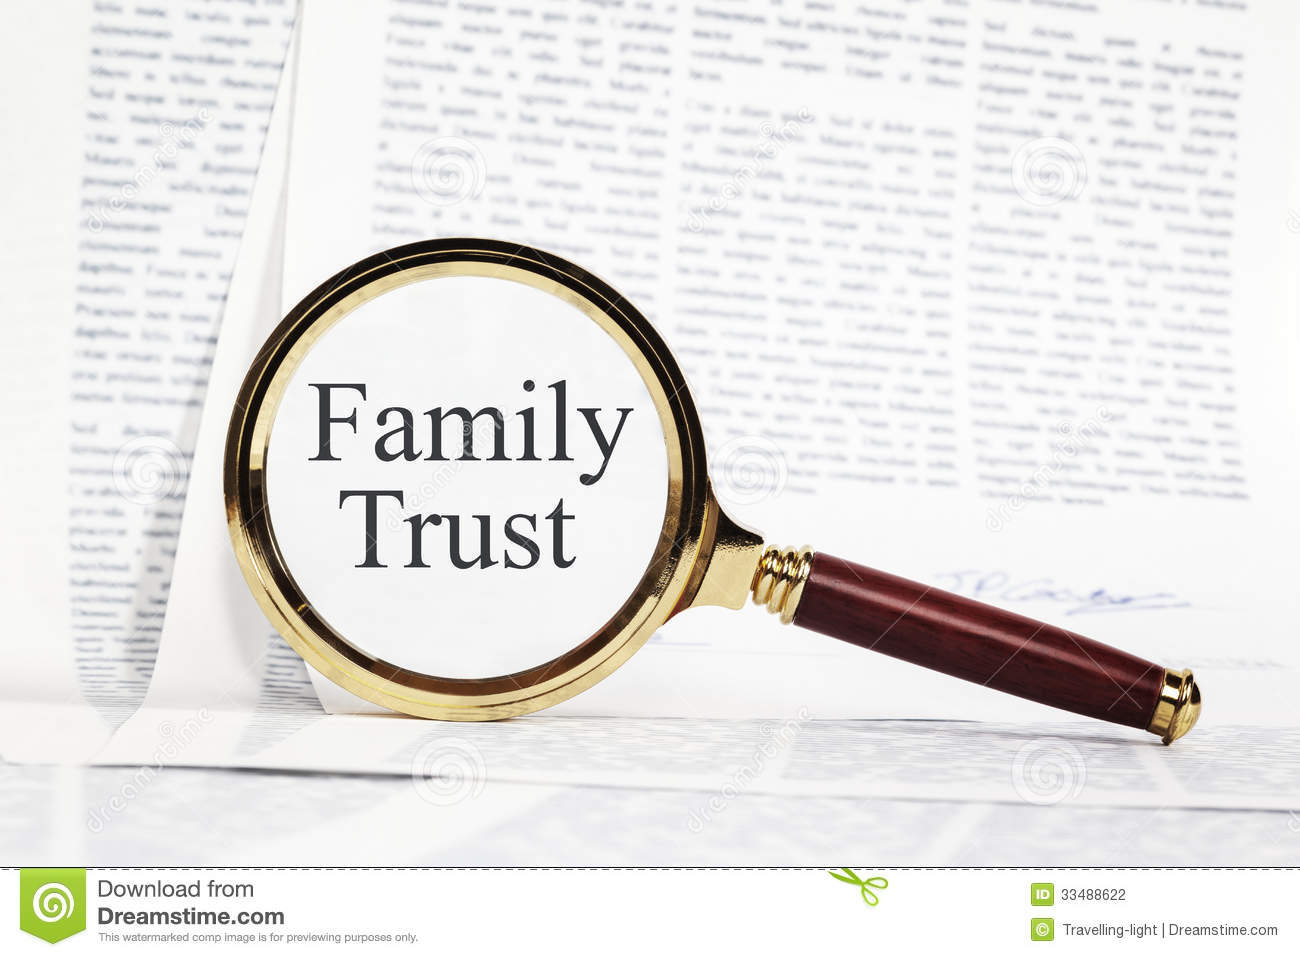 how to find a family trust